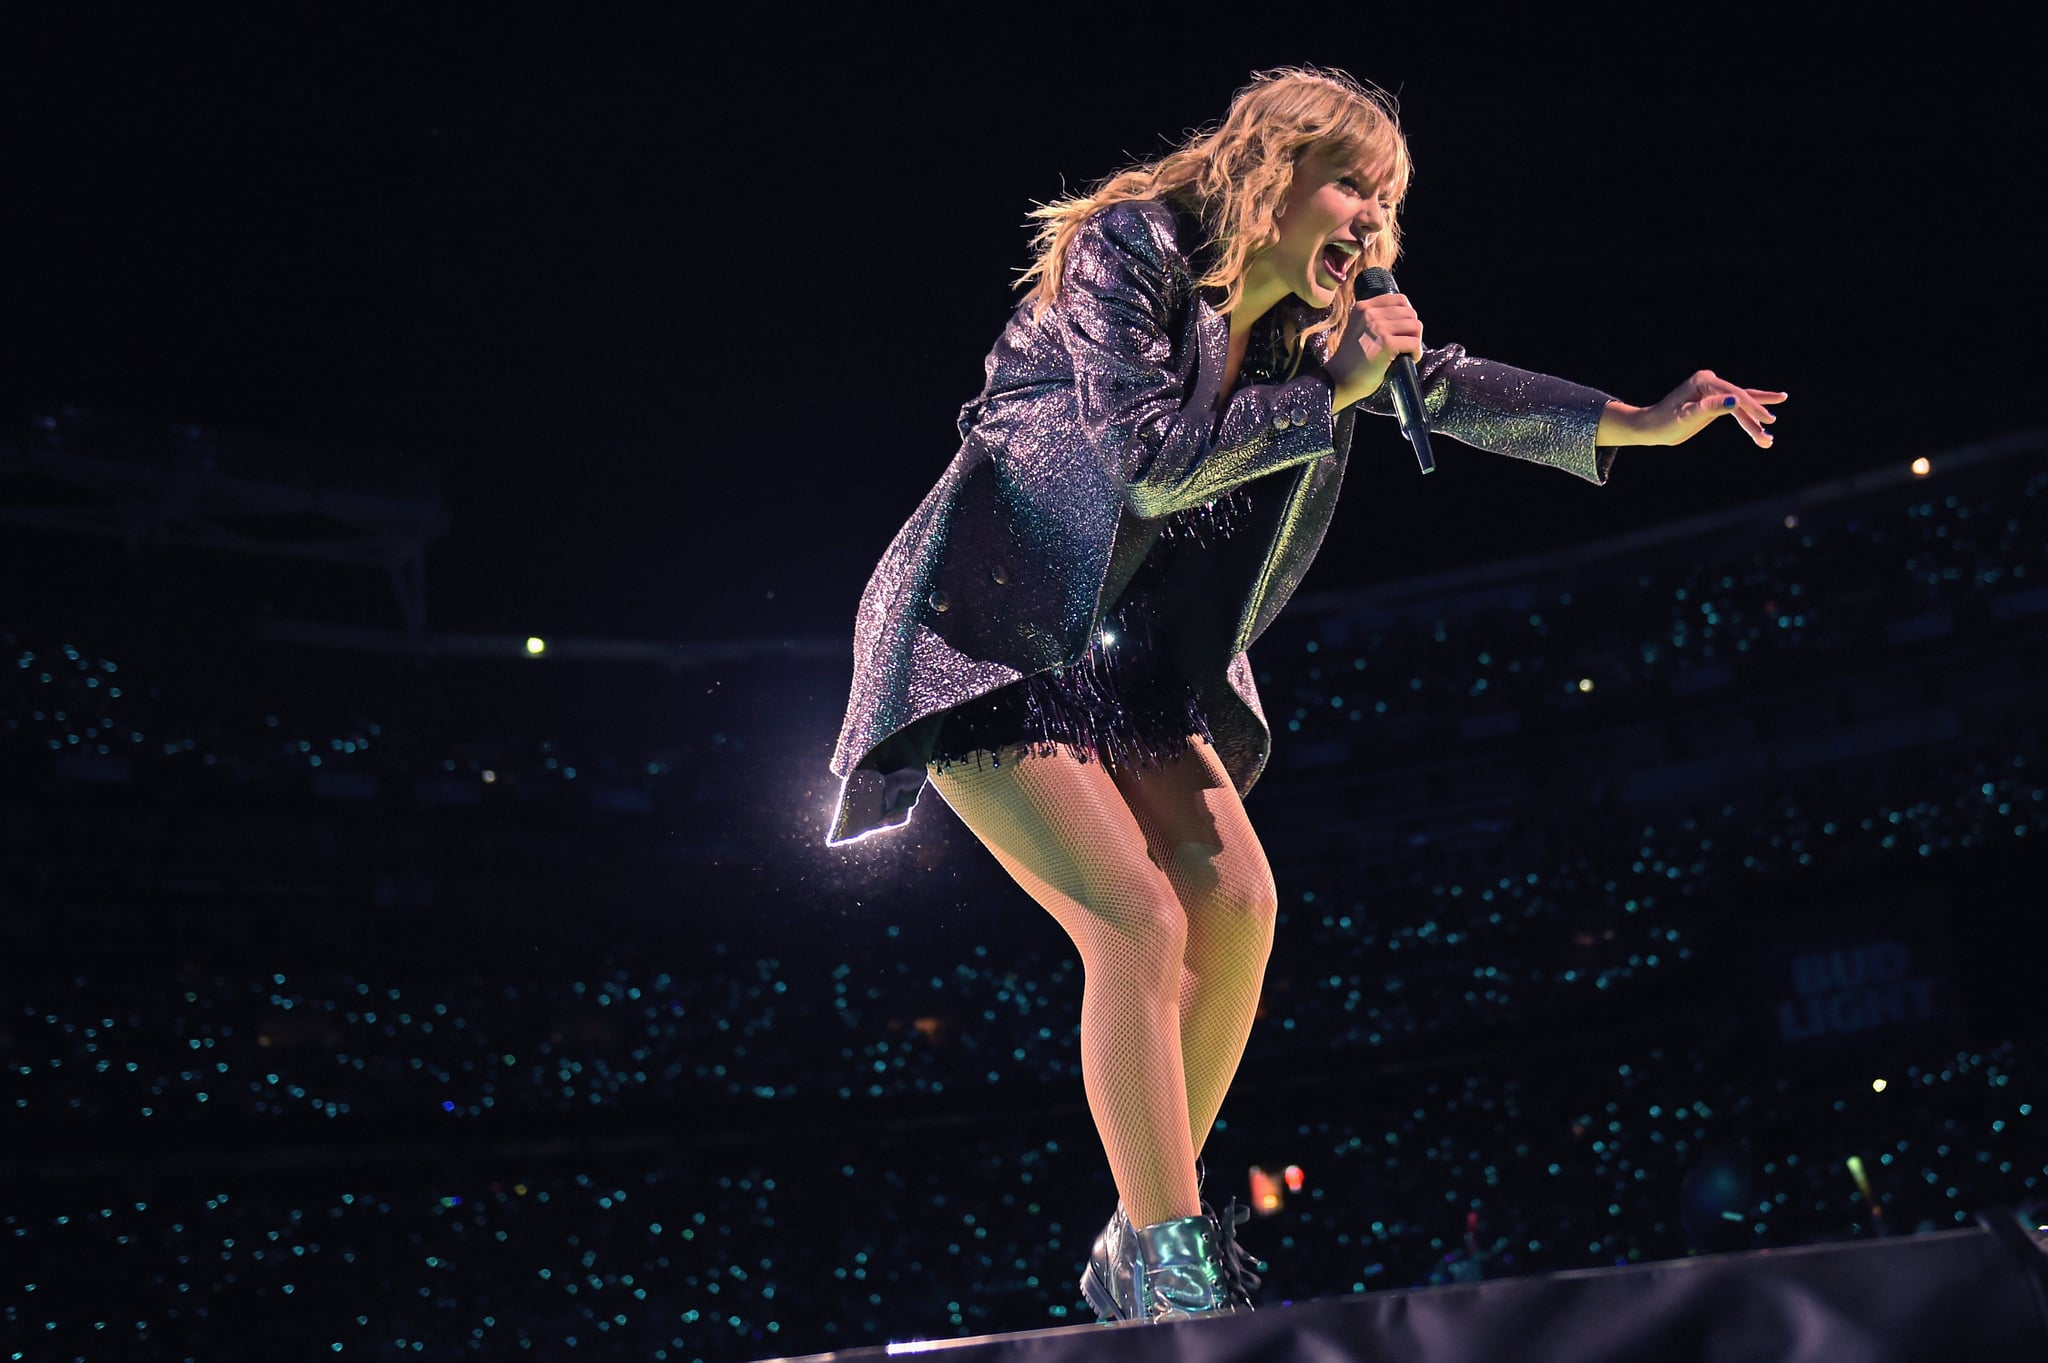 LANDOVER, MD - JULY 11:  Taylor Swift performs onstage during the Taylor Swift reputation Stadium Tour at FedExField on July 11, 2018 in Landover, Maryland.  (Photo by Jason Kempin/TAS18/Getty Images)